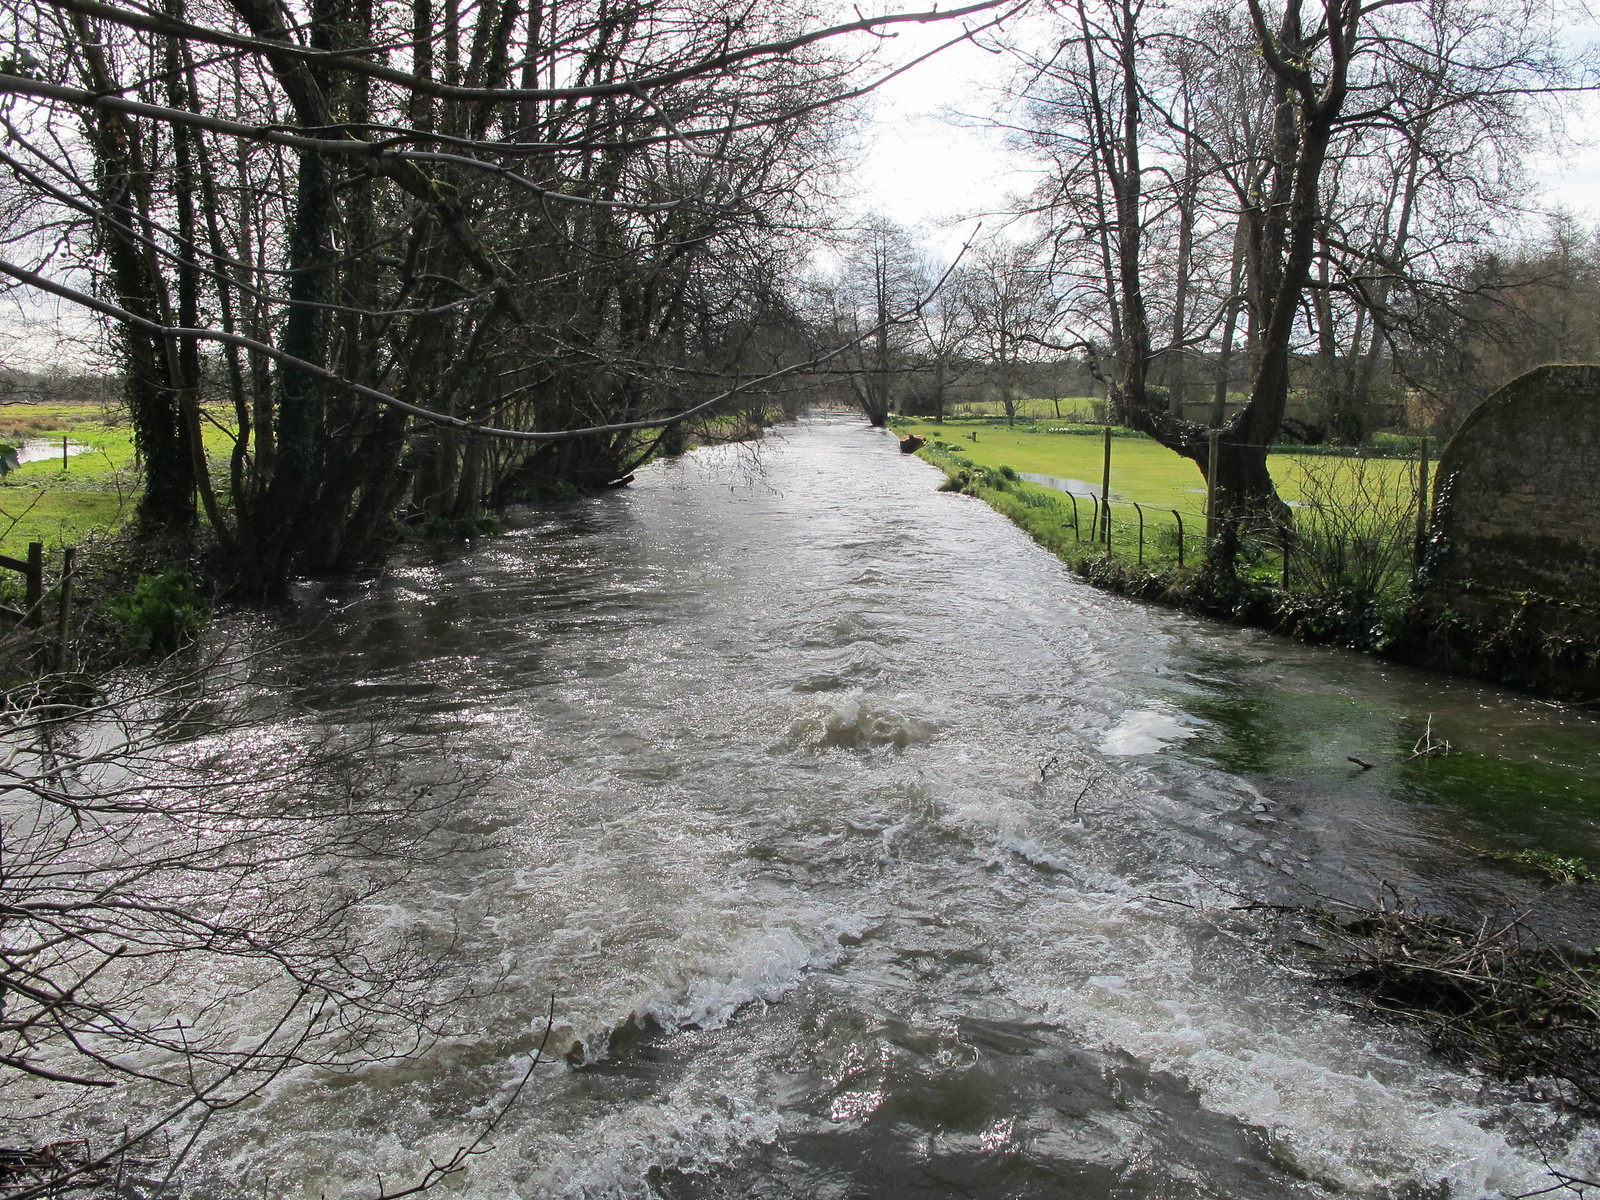 An Arm of the Test River, by bridge outside Mottisfont Abbey Gardens SWC Walk 58 Mottisfont and Dunbridge to Romsey taken by Karen C.